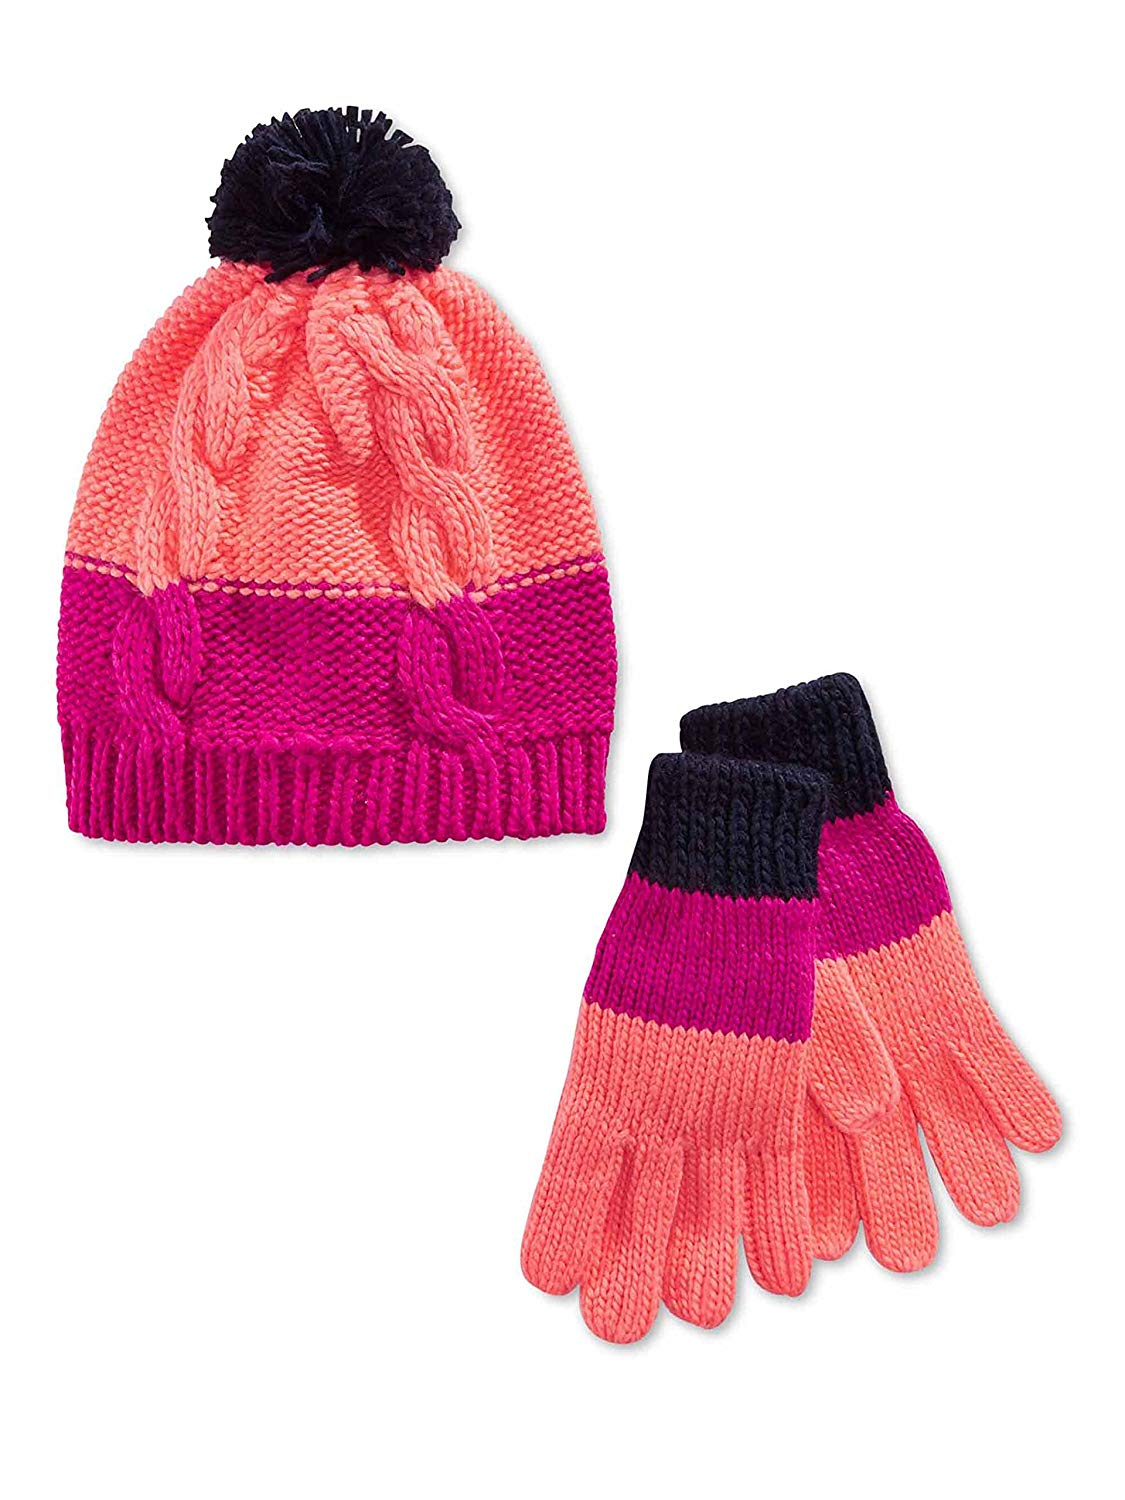 ccffa30a73f Get Quotations · Osh Kosh Little Girls Color Blocked Cable Knit Hat and Gloves  Set - Size 4-